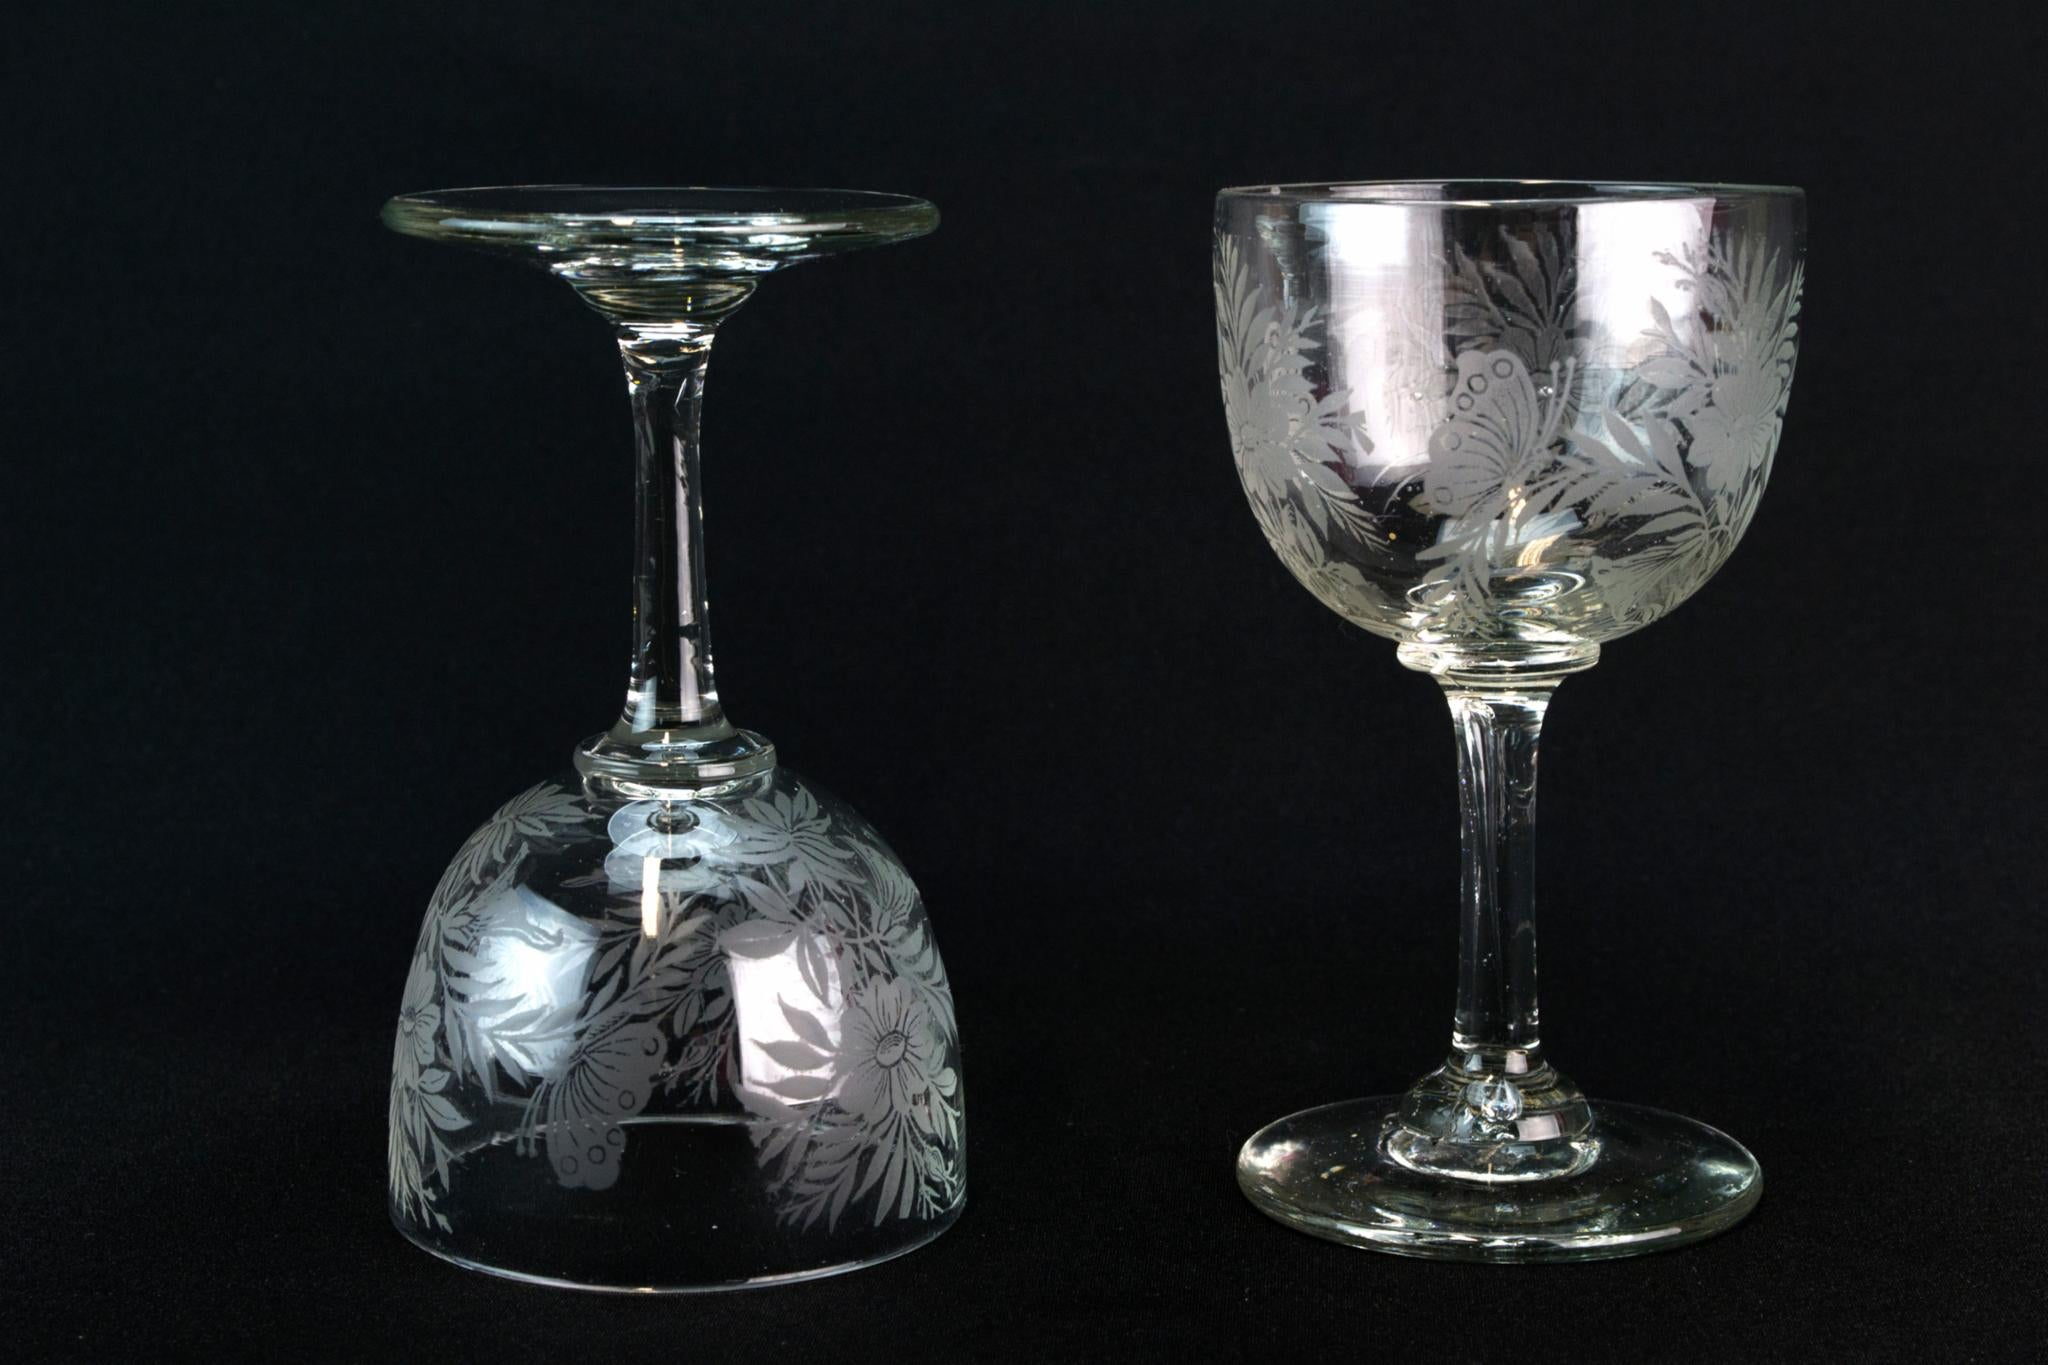 2 Desert Wine Glasses with Butterflies Decor, English Circa 1900